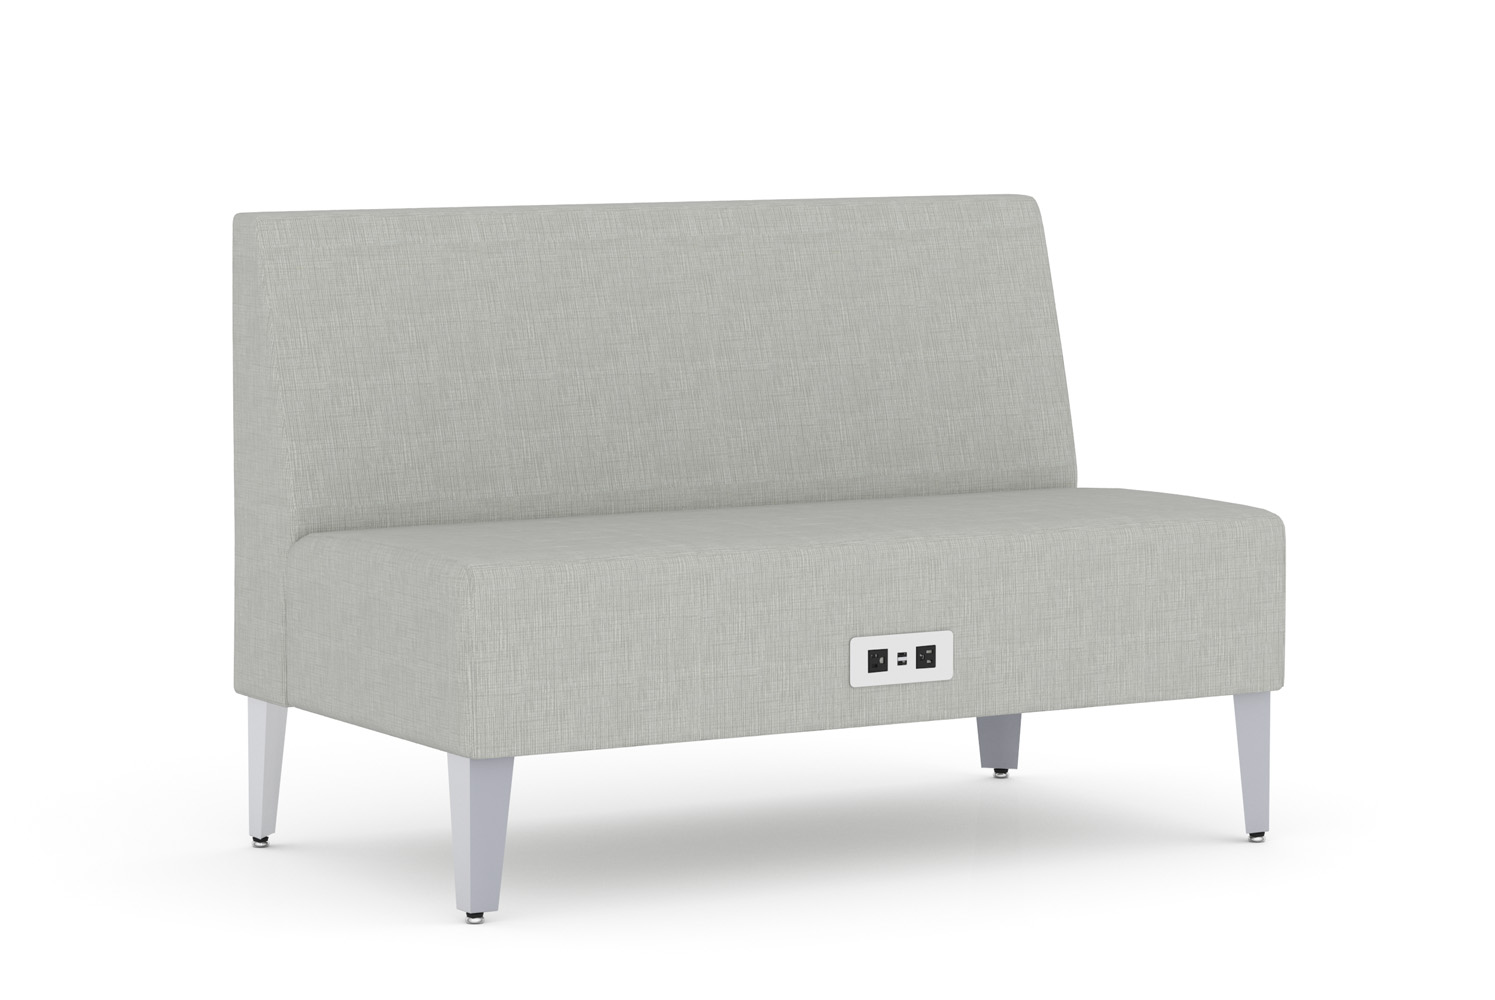 Malibu, Banquette, 48 inch, Power/Data Unit